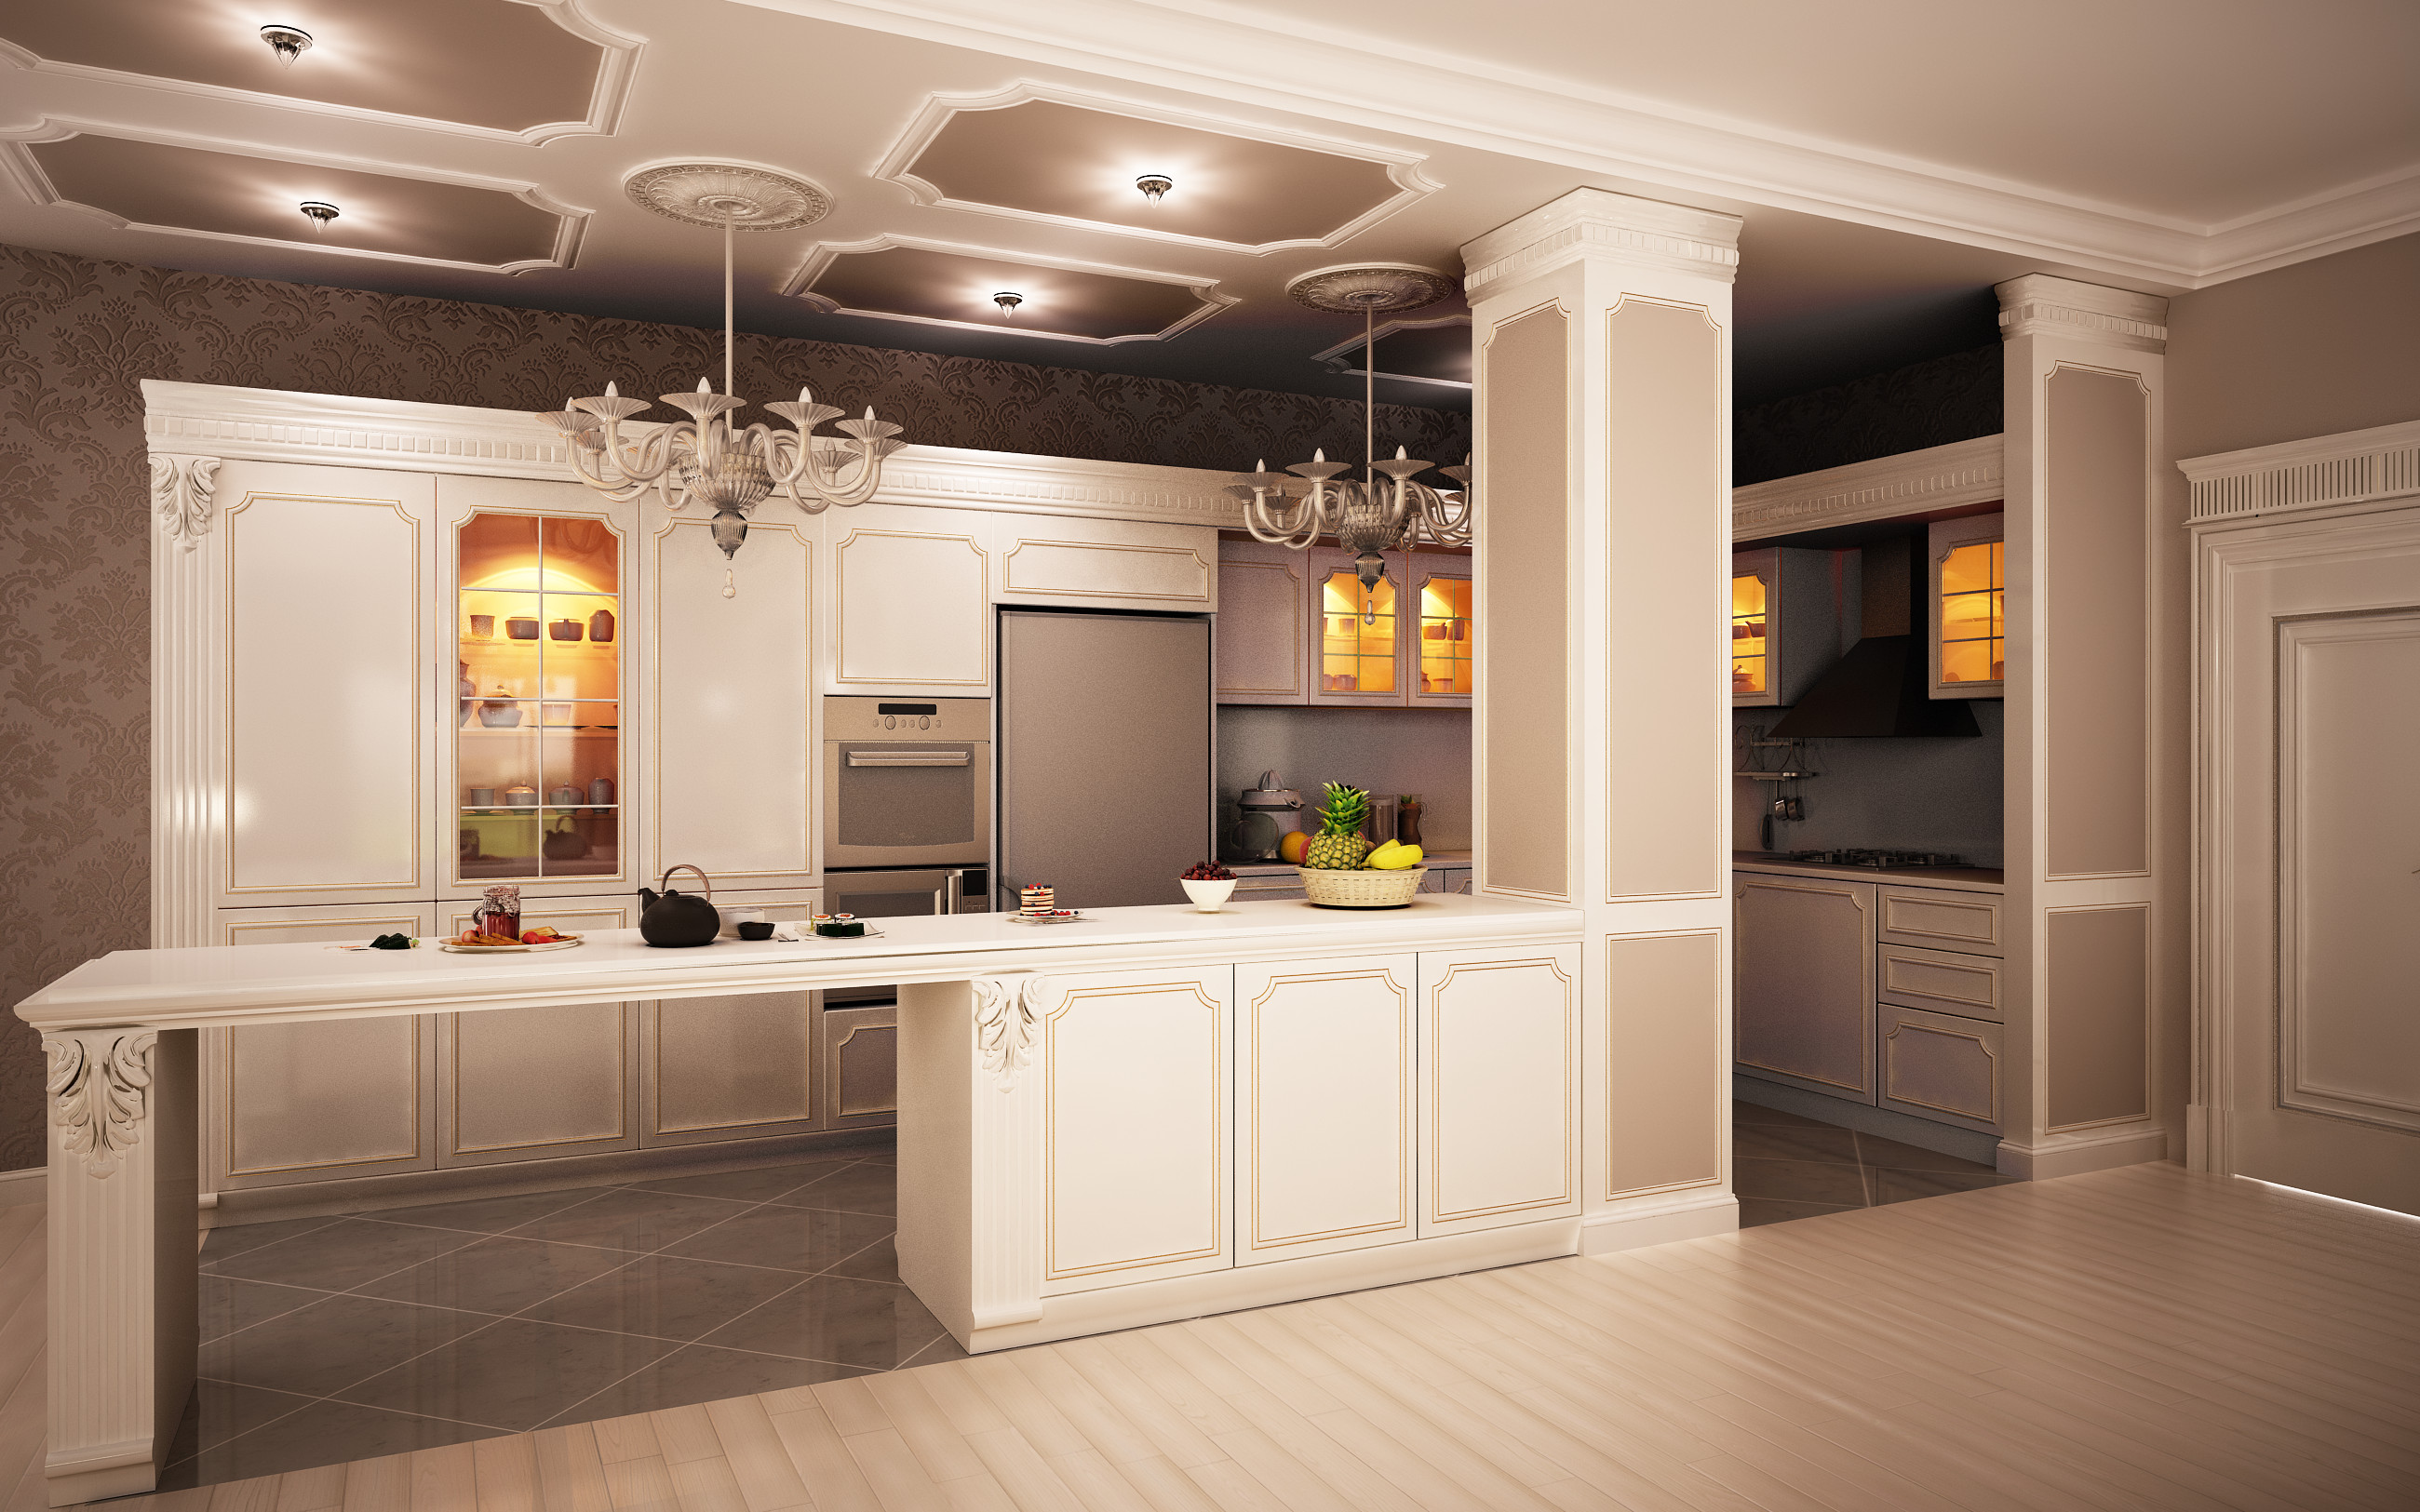 Classic Kitchen Classic Kitchen 1 By Murataral On Deviantart